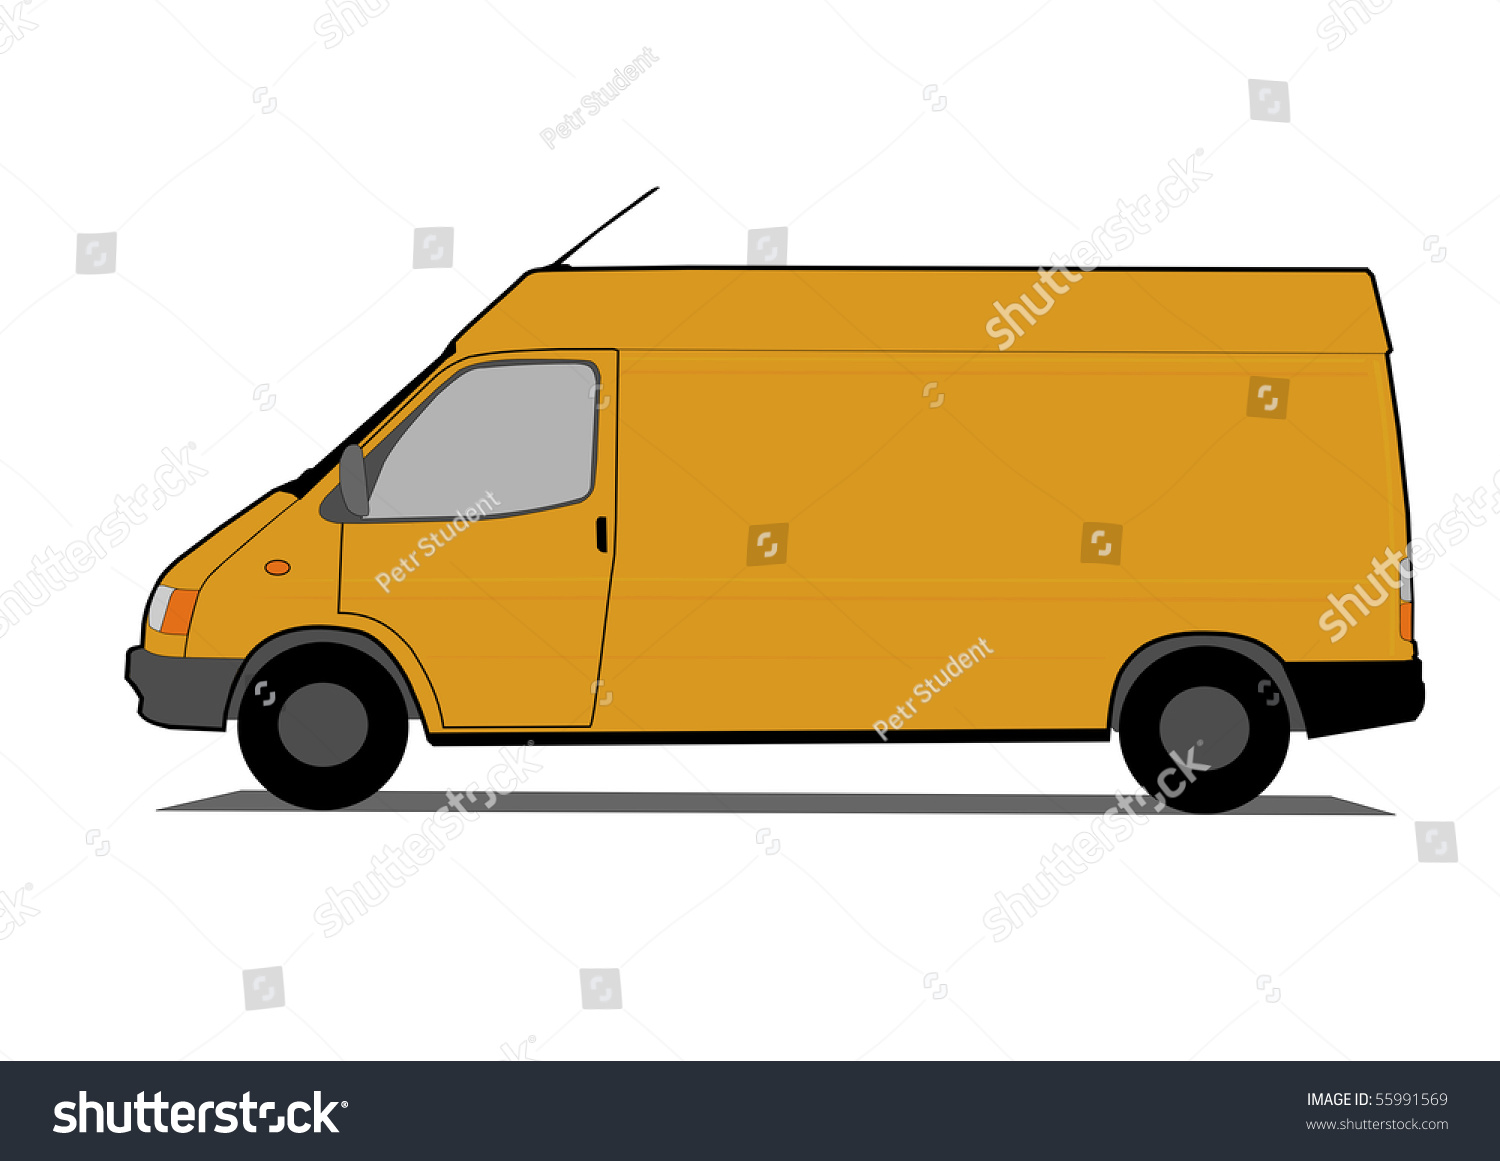 Delivery Van Stock Vector Illustration 55991569 : Shutterstock